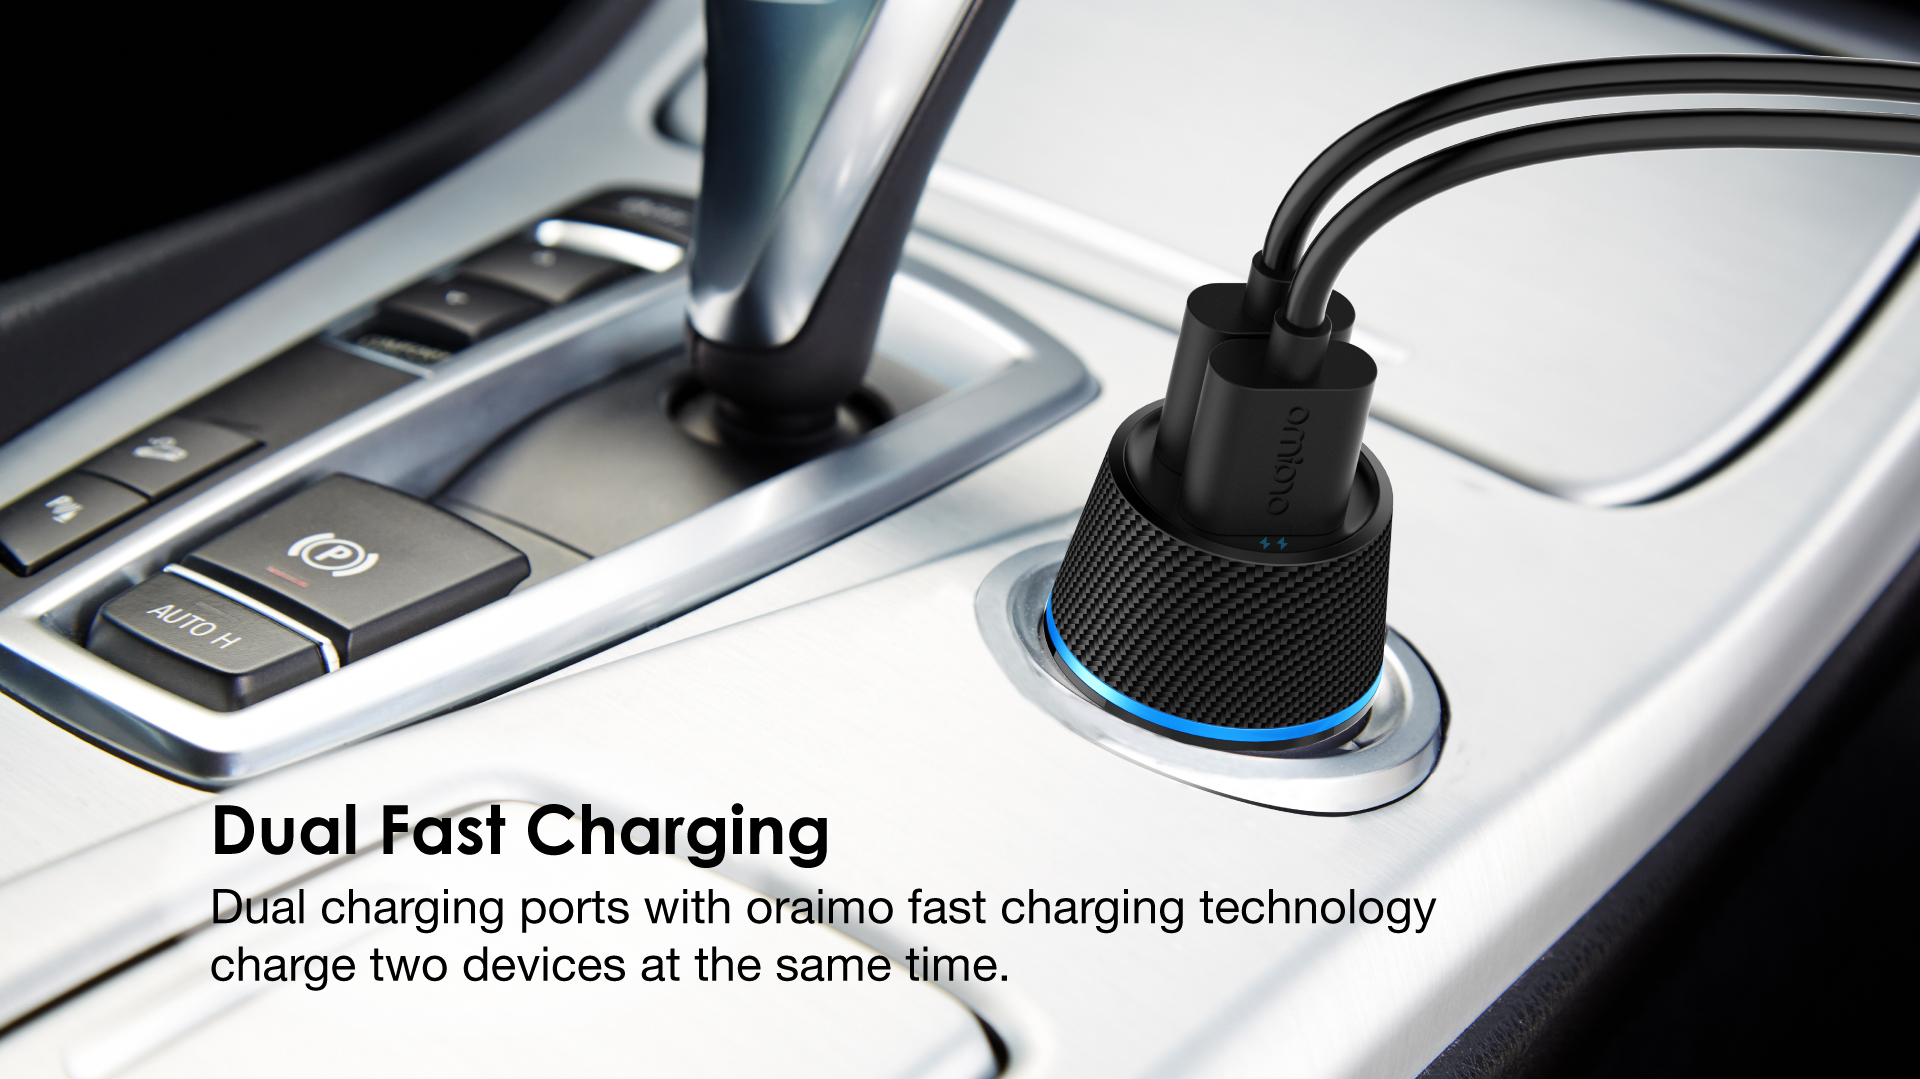 Oraimo Chargeur De Voiture allumecigare 5.0V / 2.1A, Dual USB, Fast Charge, Système Multi-Protection prix maroc